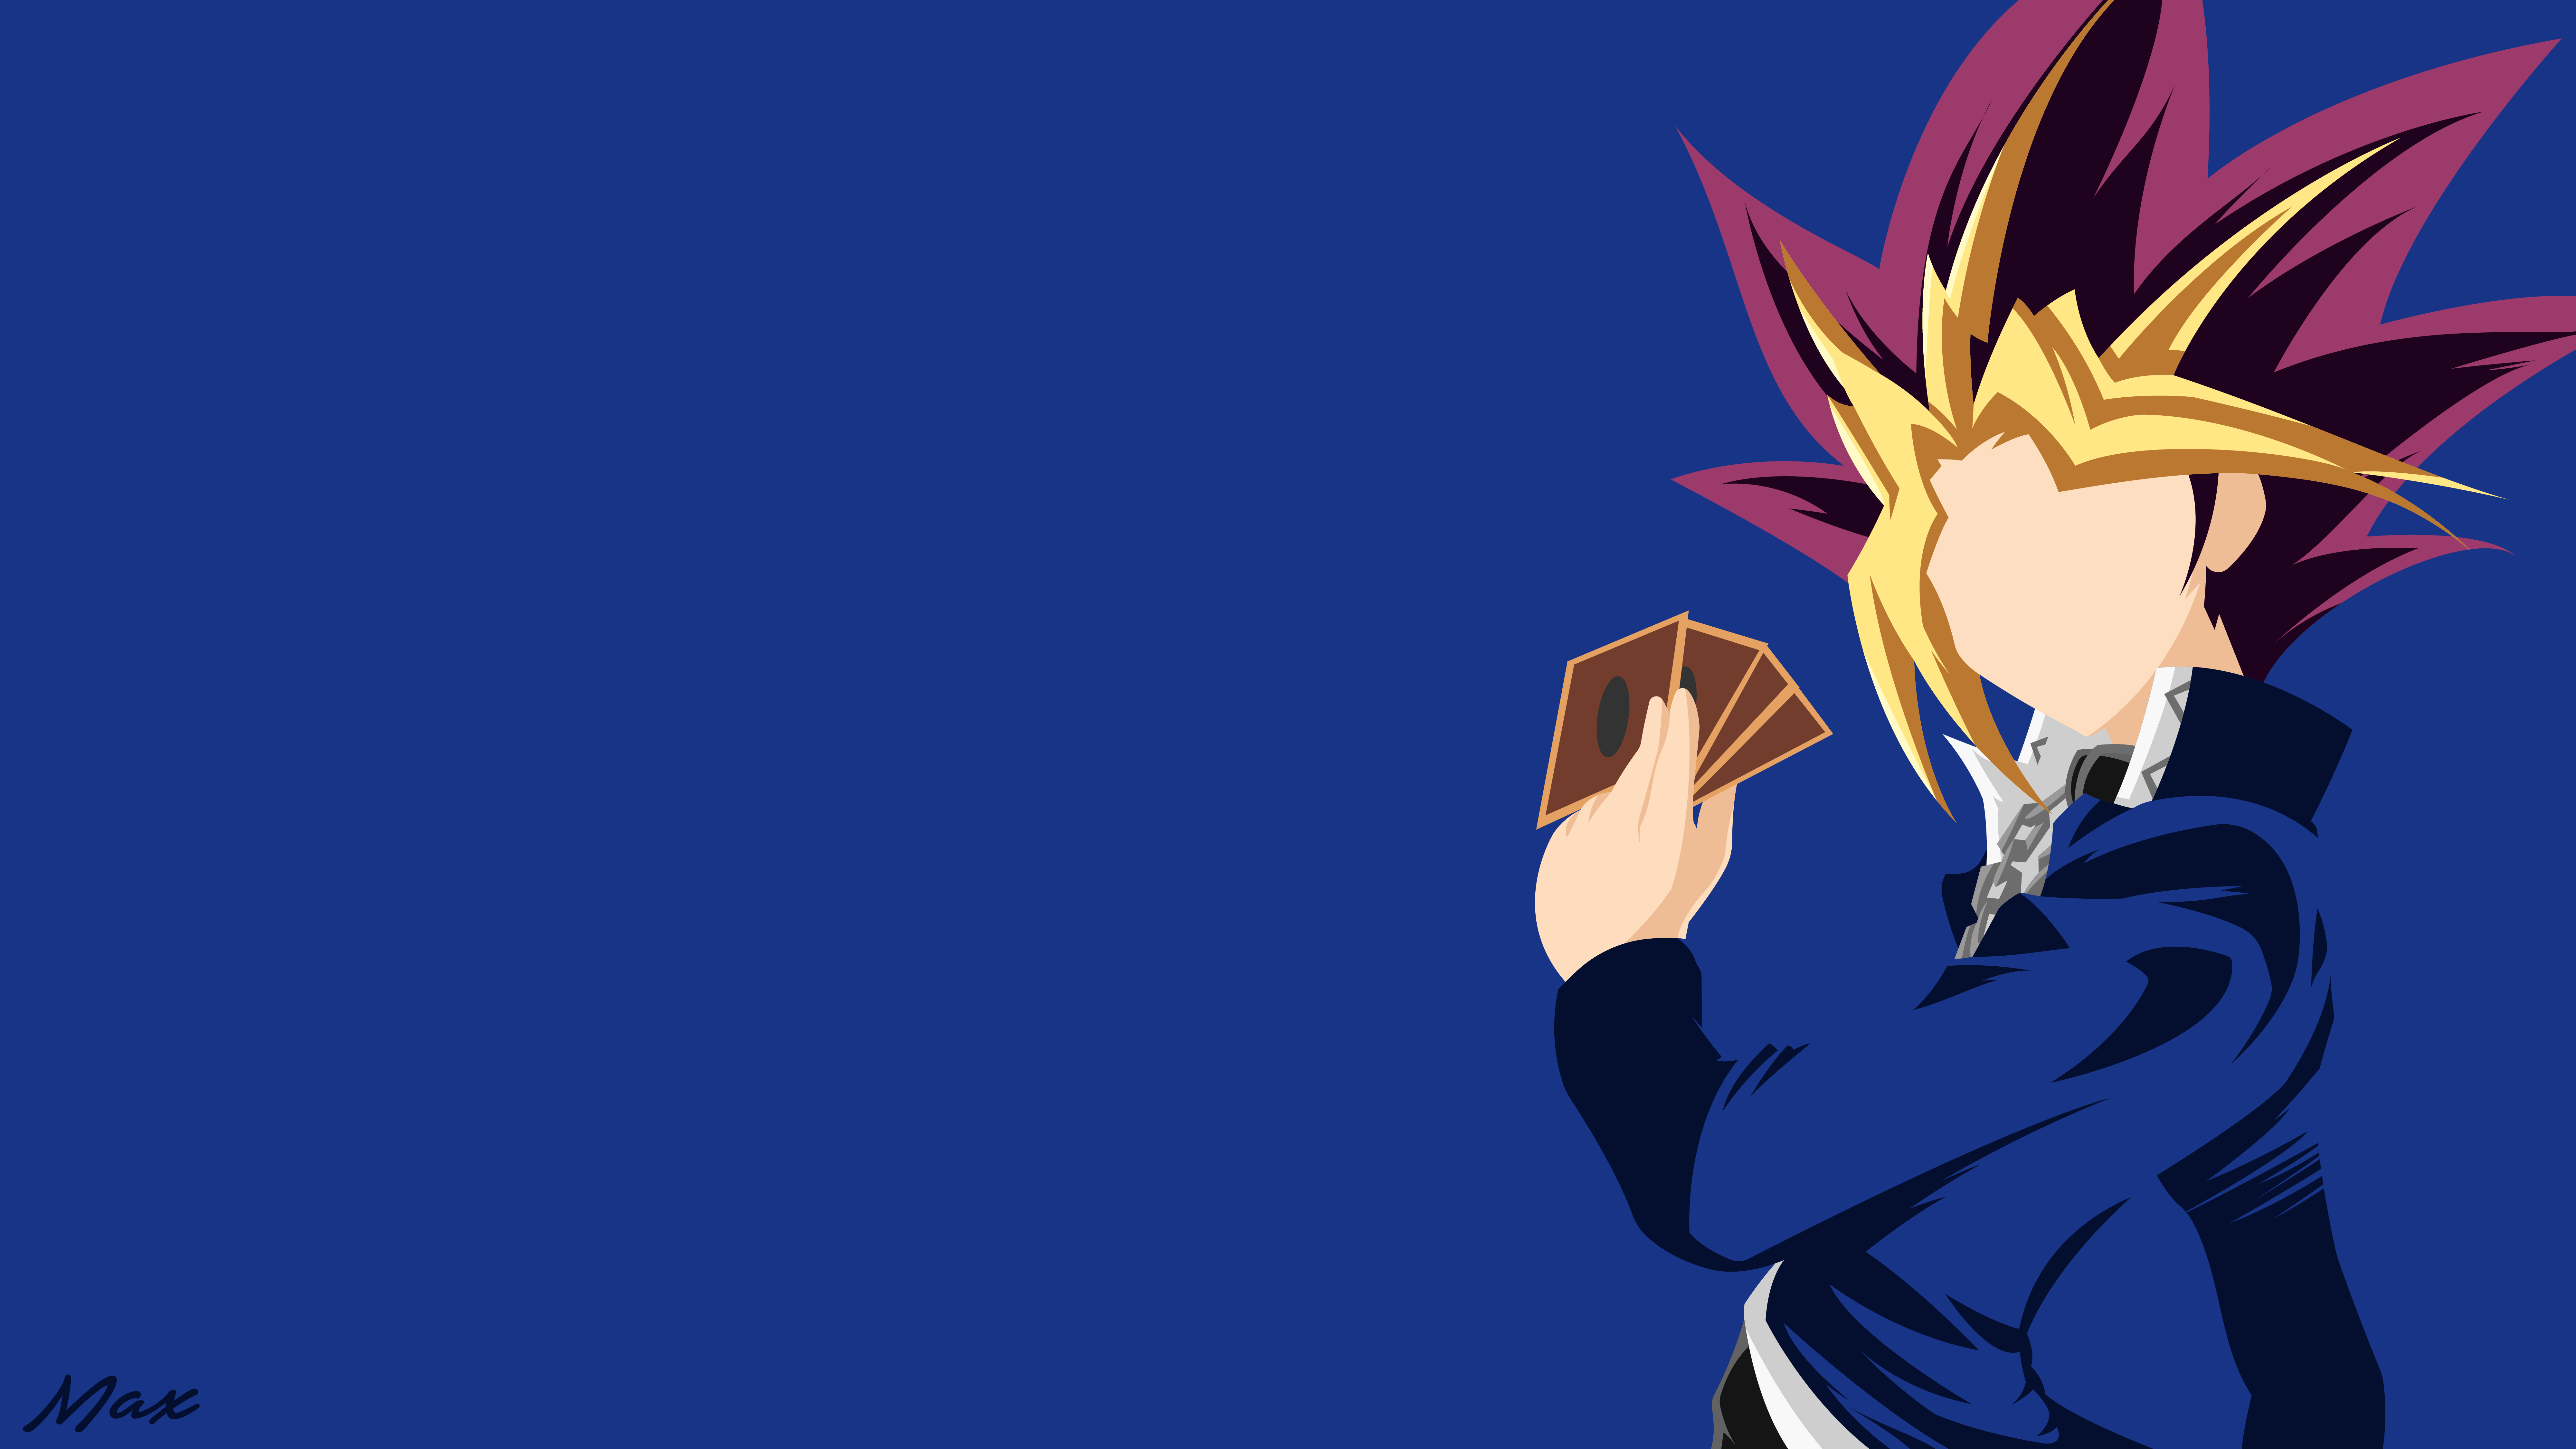 Yu-Gi-Oh! Wallpapers - Wallpaper Cave